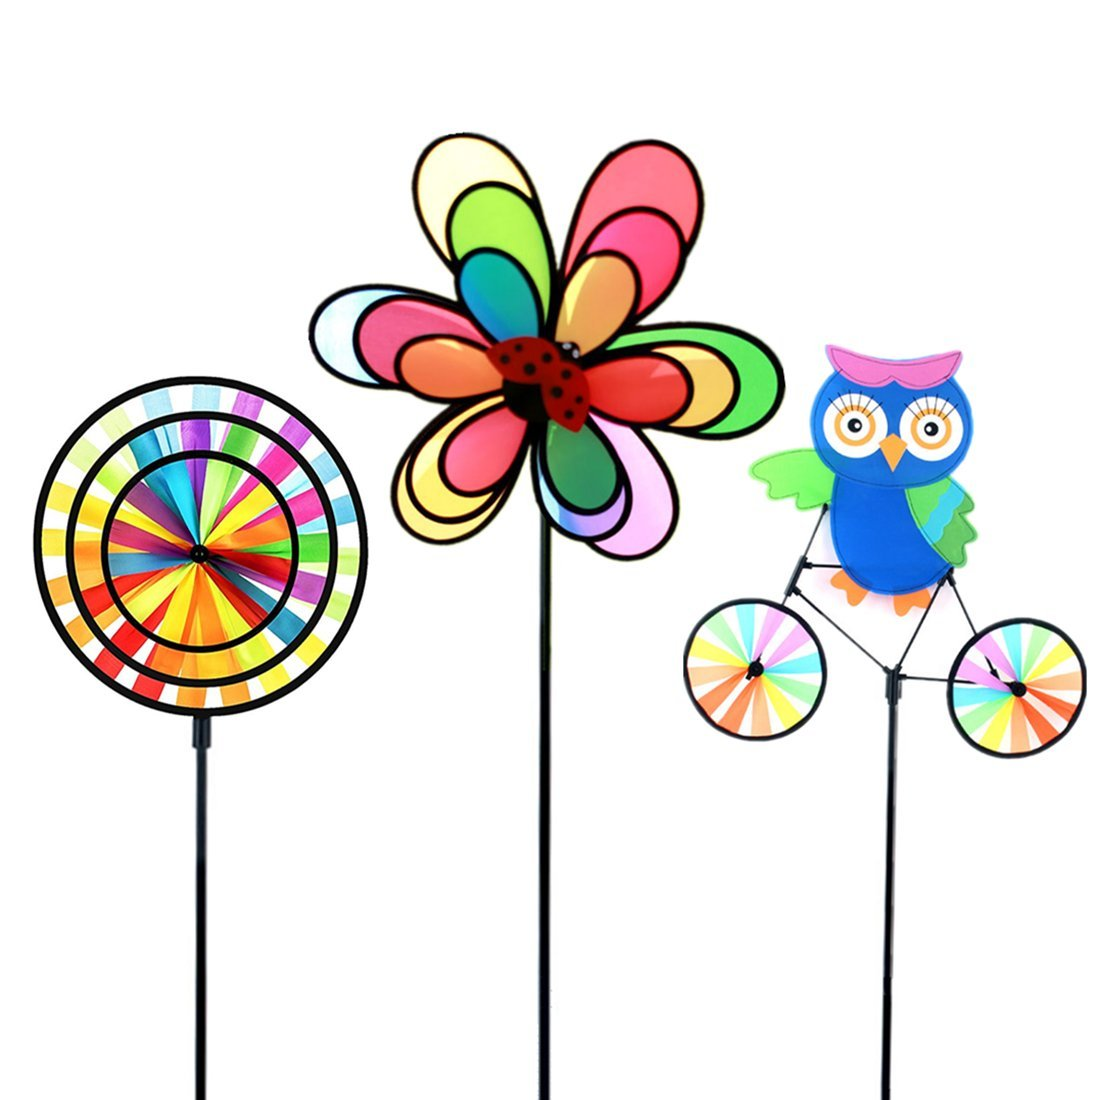 ASWCOWY Pinwheels Windmills Wind Spinners 3 Pack Made of Durable 100% Weatherproof Nylon and Fiberglass Children's Toys Outdoor Camping Kindergarten Garden Lawn Yard Decor (style1) by ASWCOWY